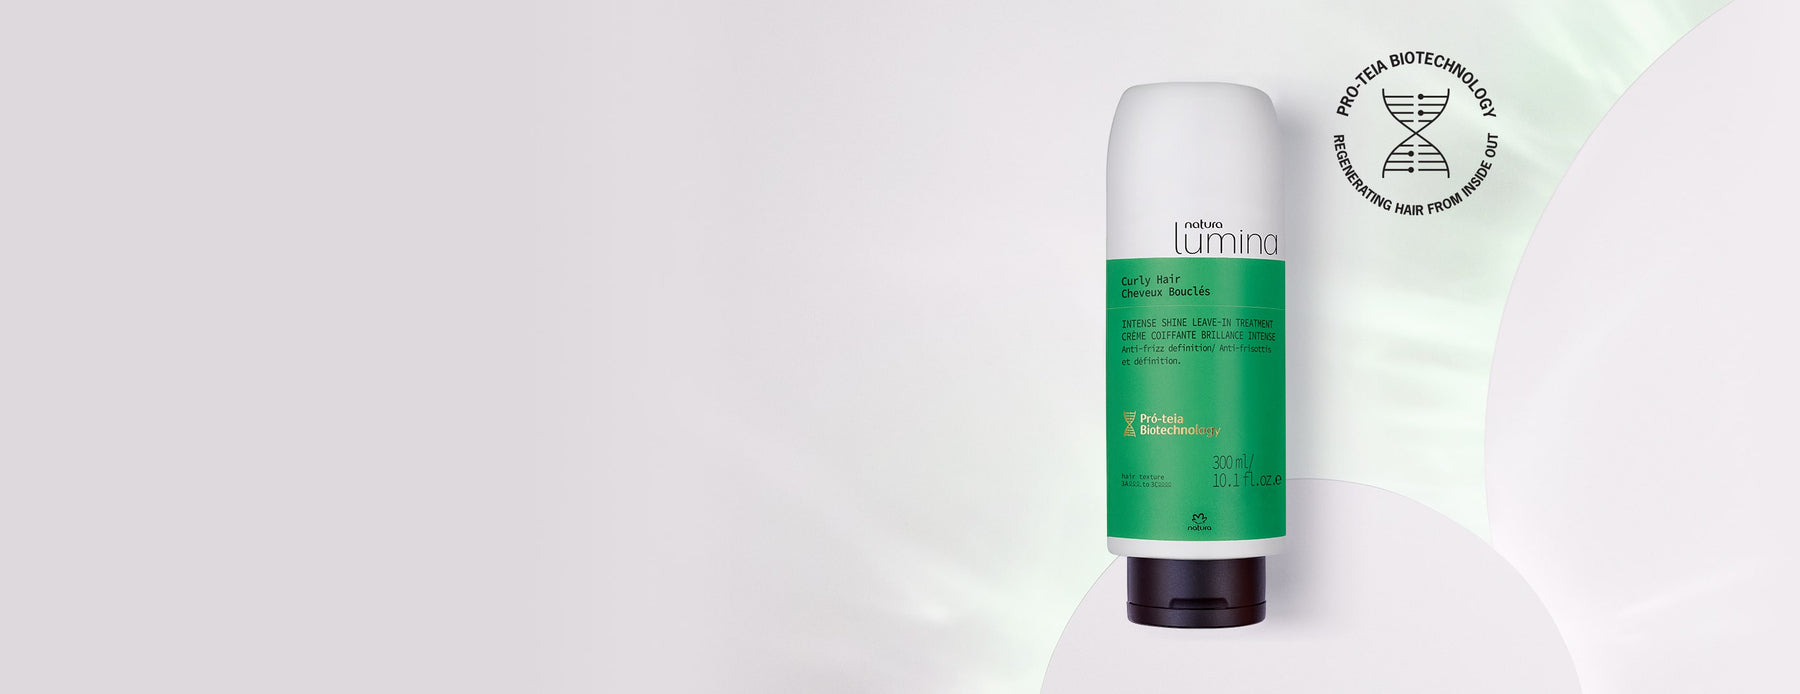 Intense Shine Leave-In Treatment for Curly Hair Lumina - Natura